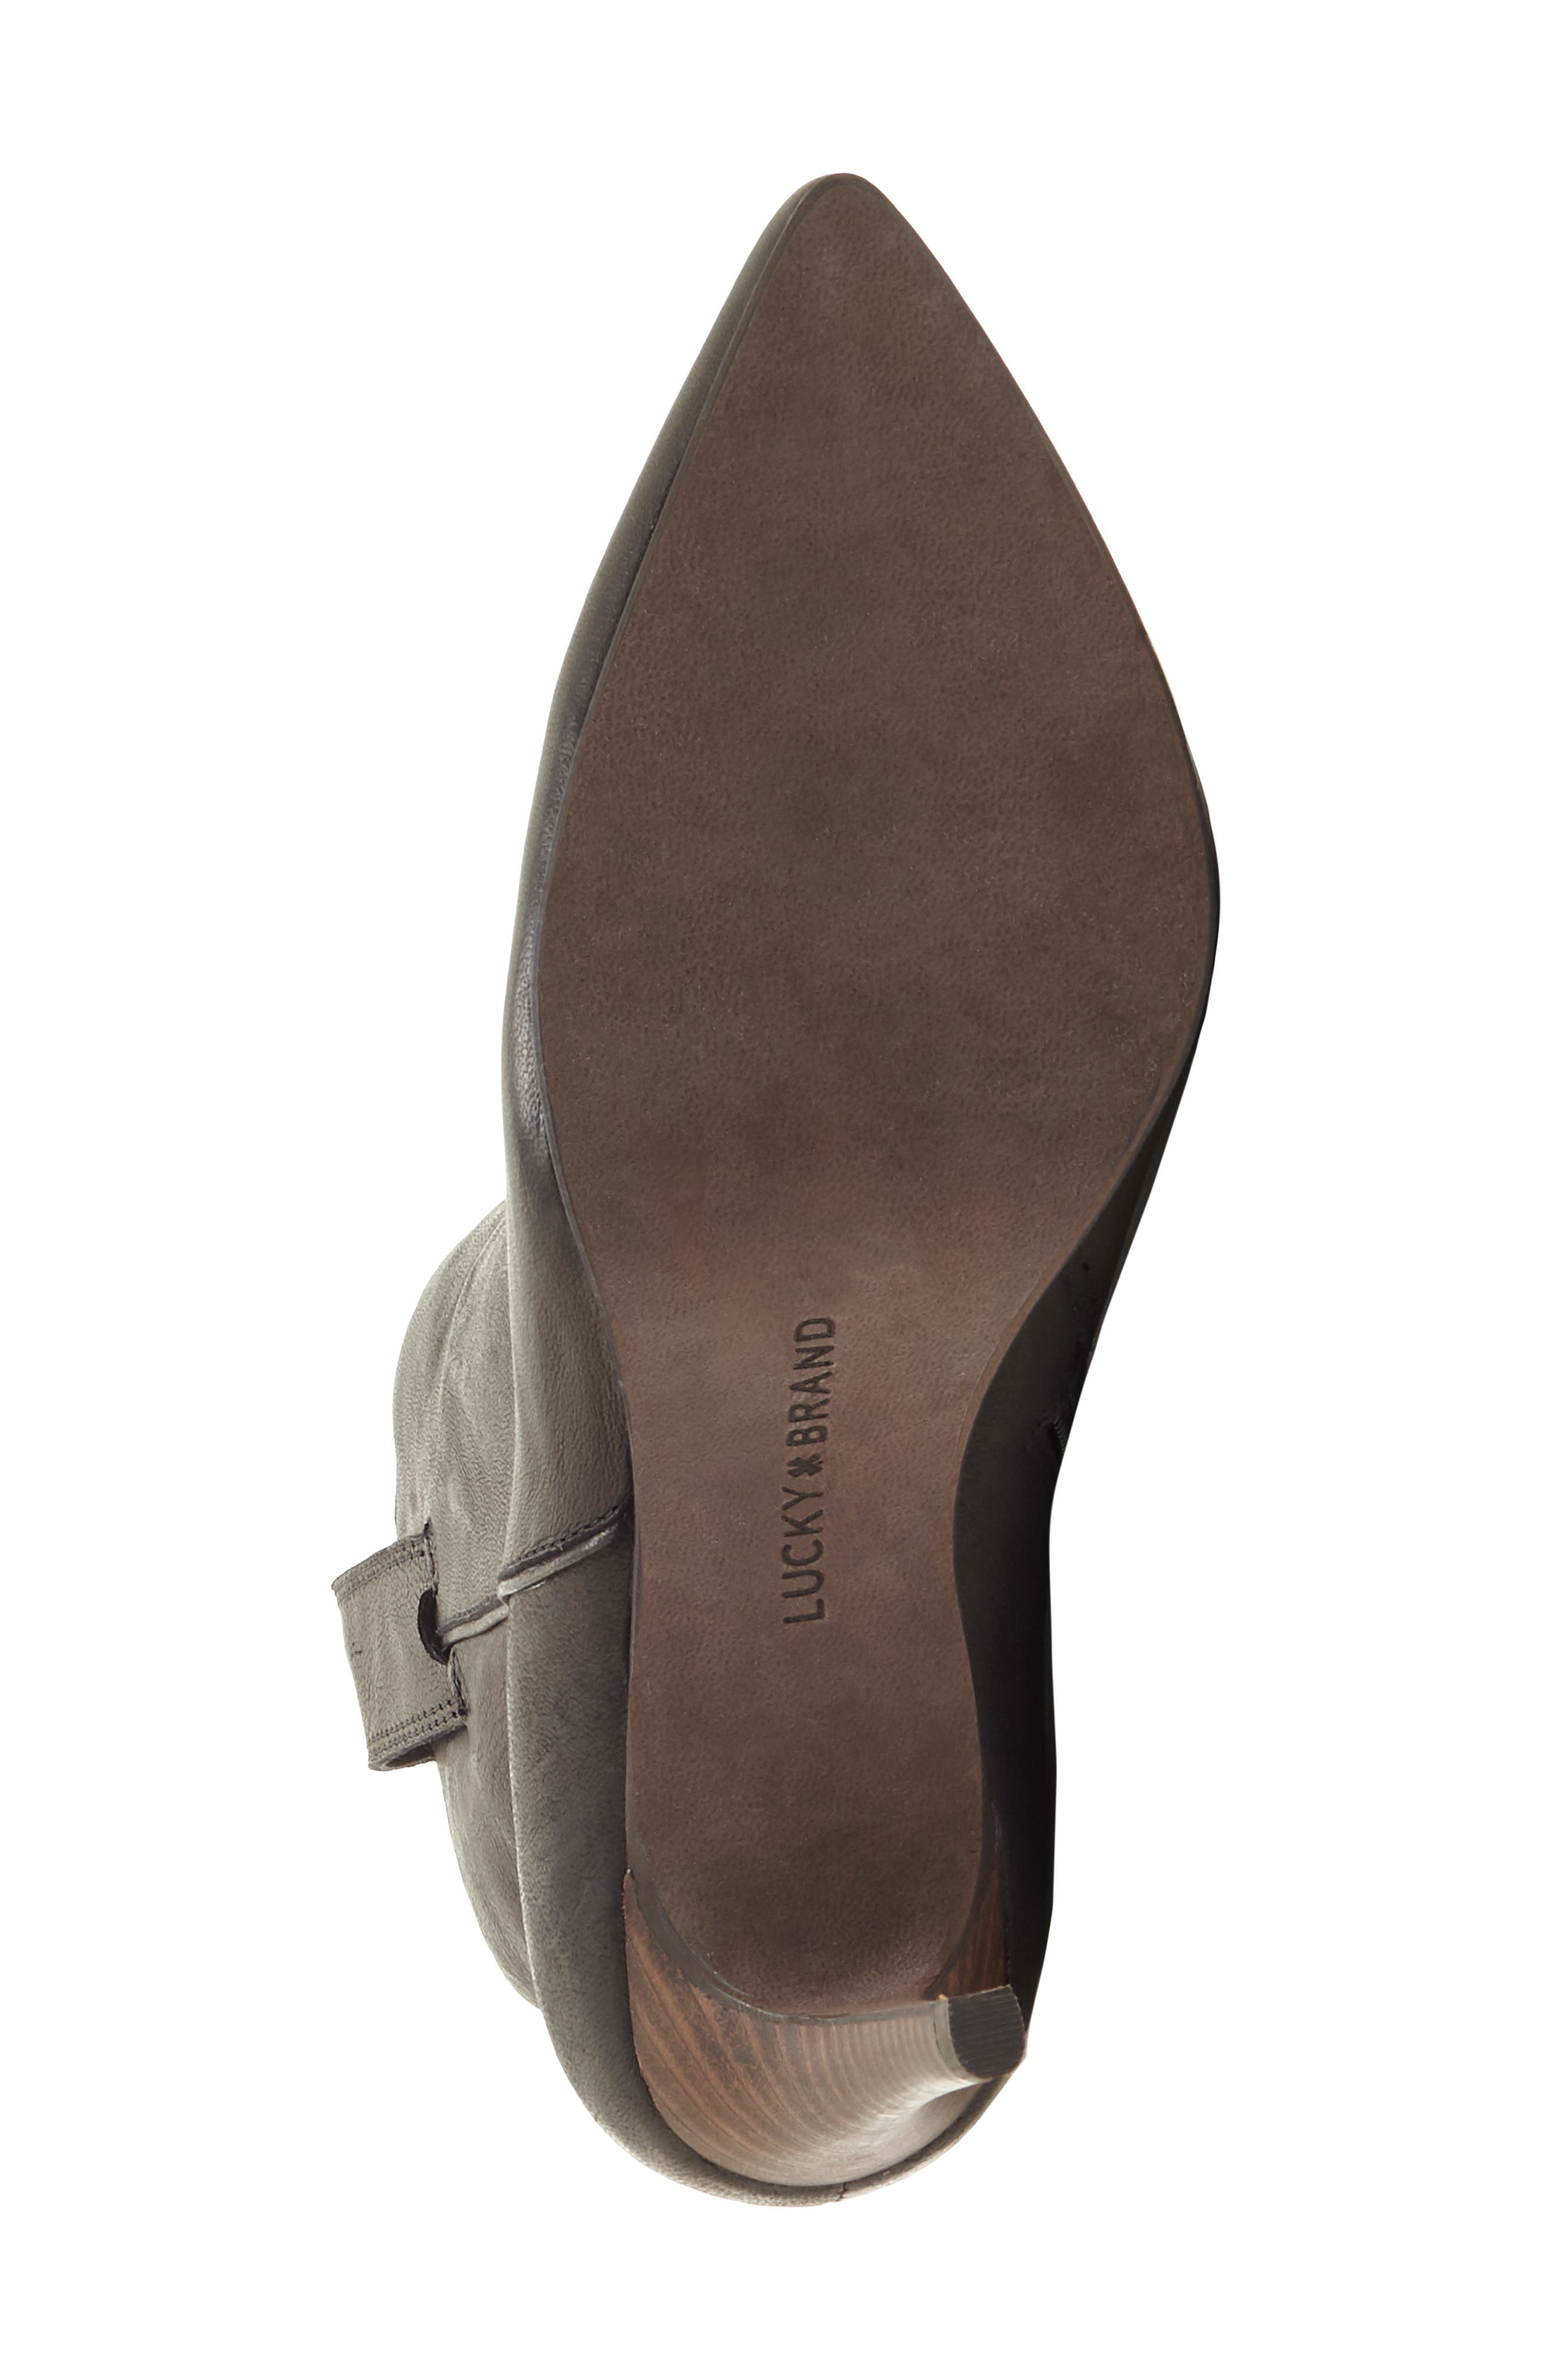 LUCKY BRAND,                             Torince Bootie,                             Alternate thumbnail 6, color,                             200